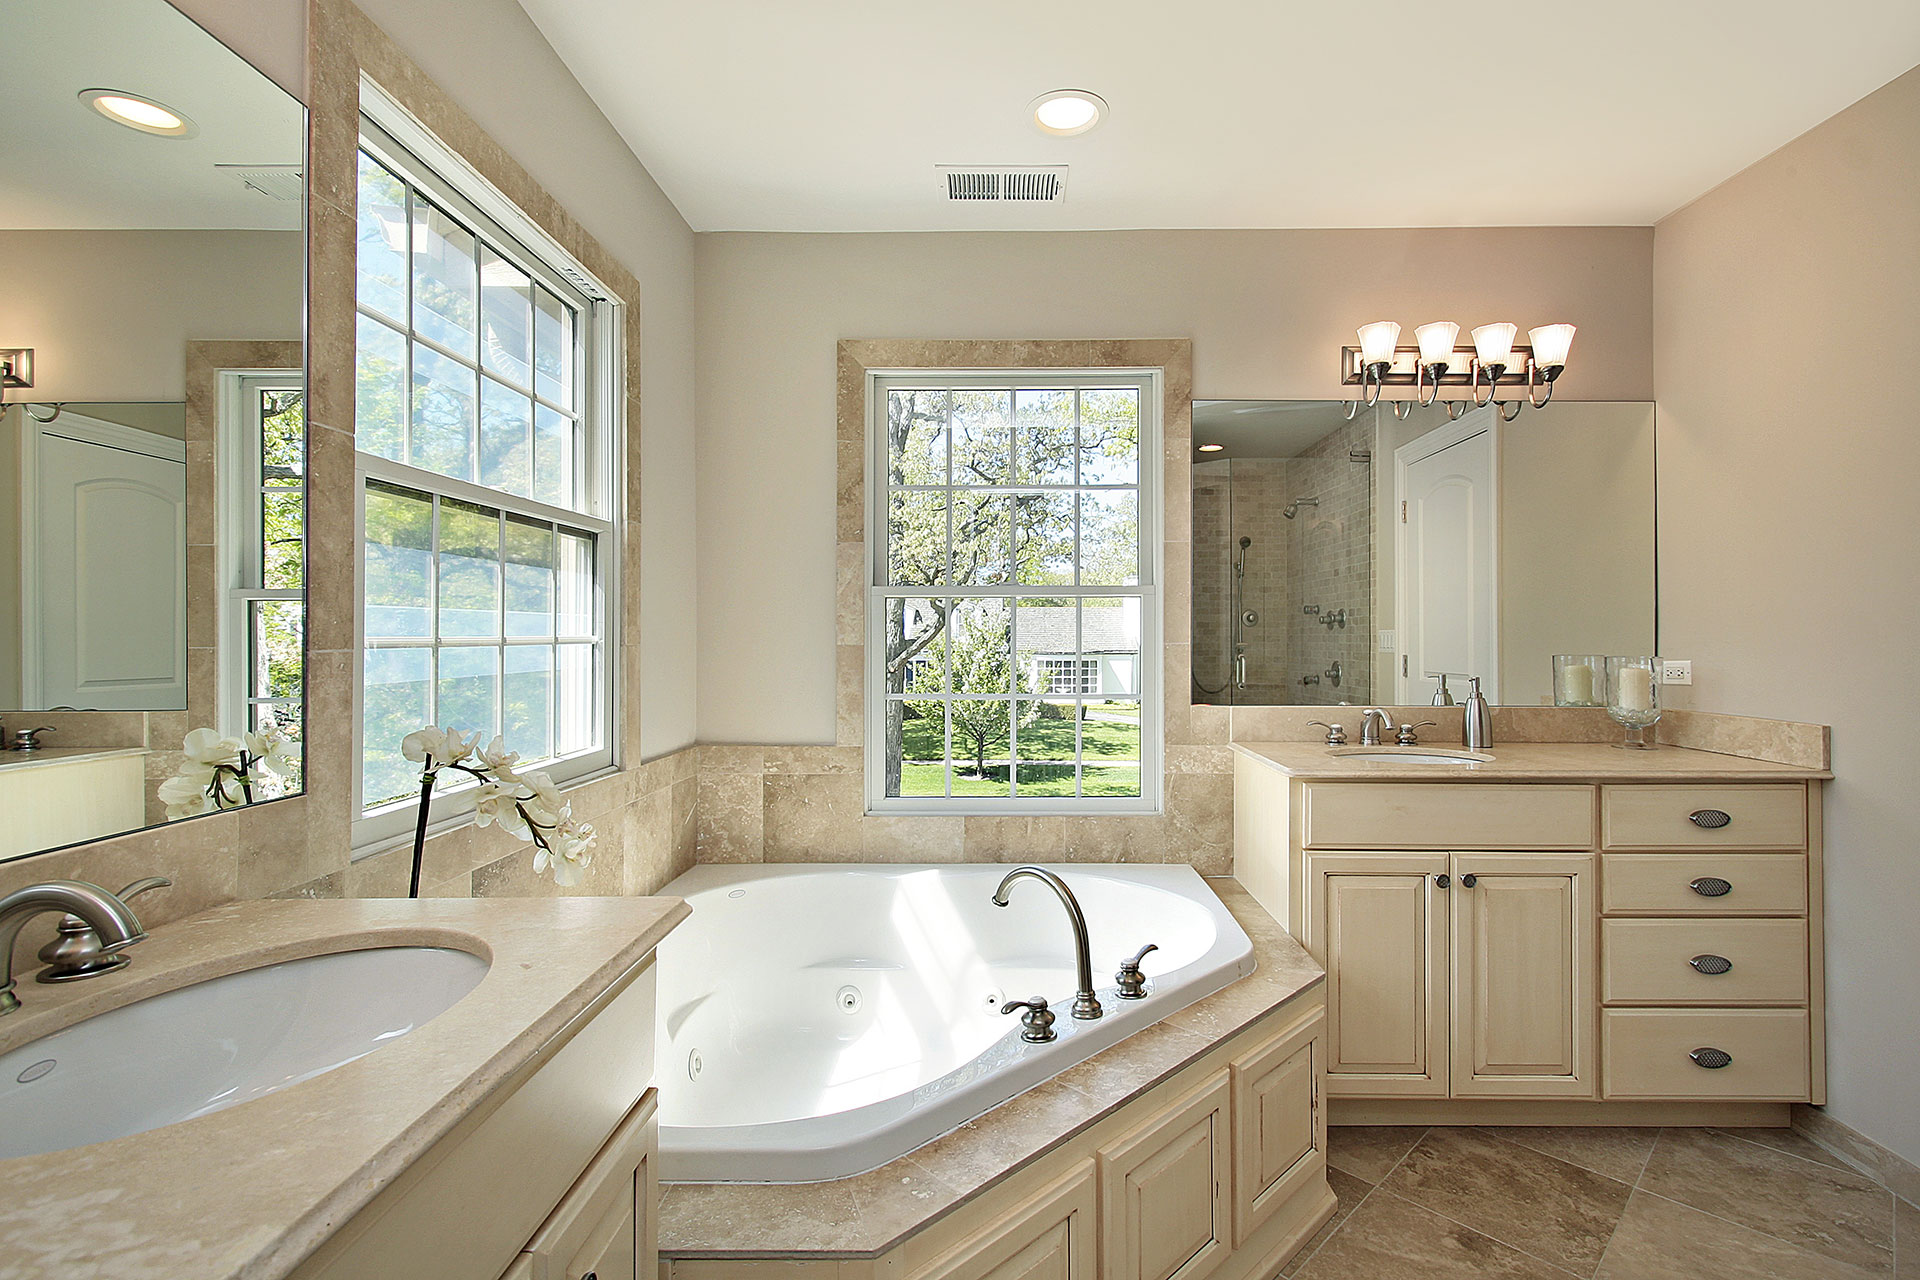 cornerstone bathroom atlanta remodels remodeling renovations georgia by renovation